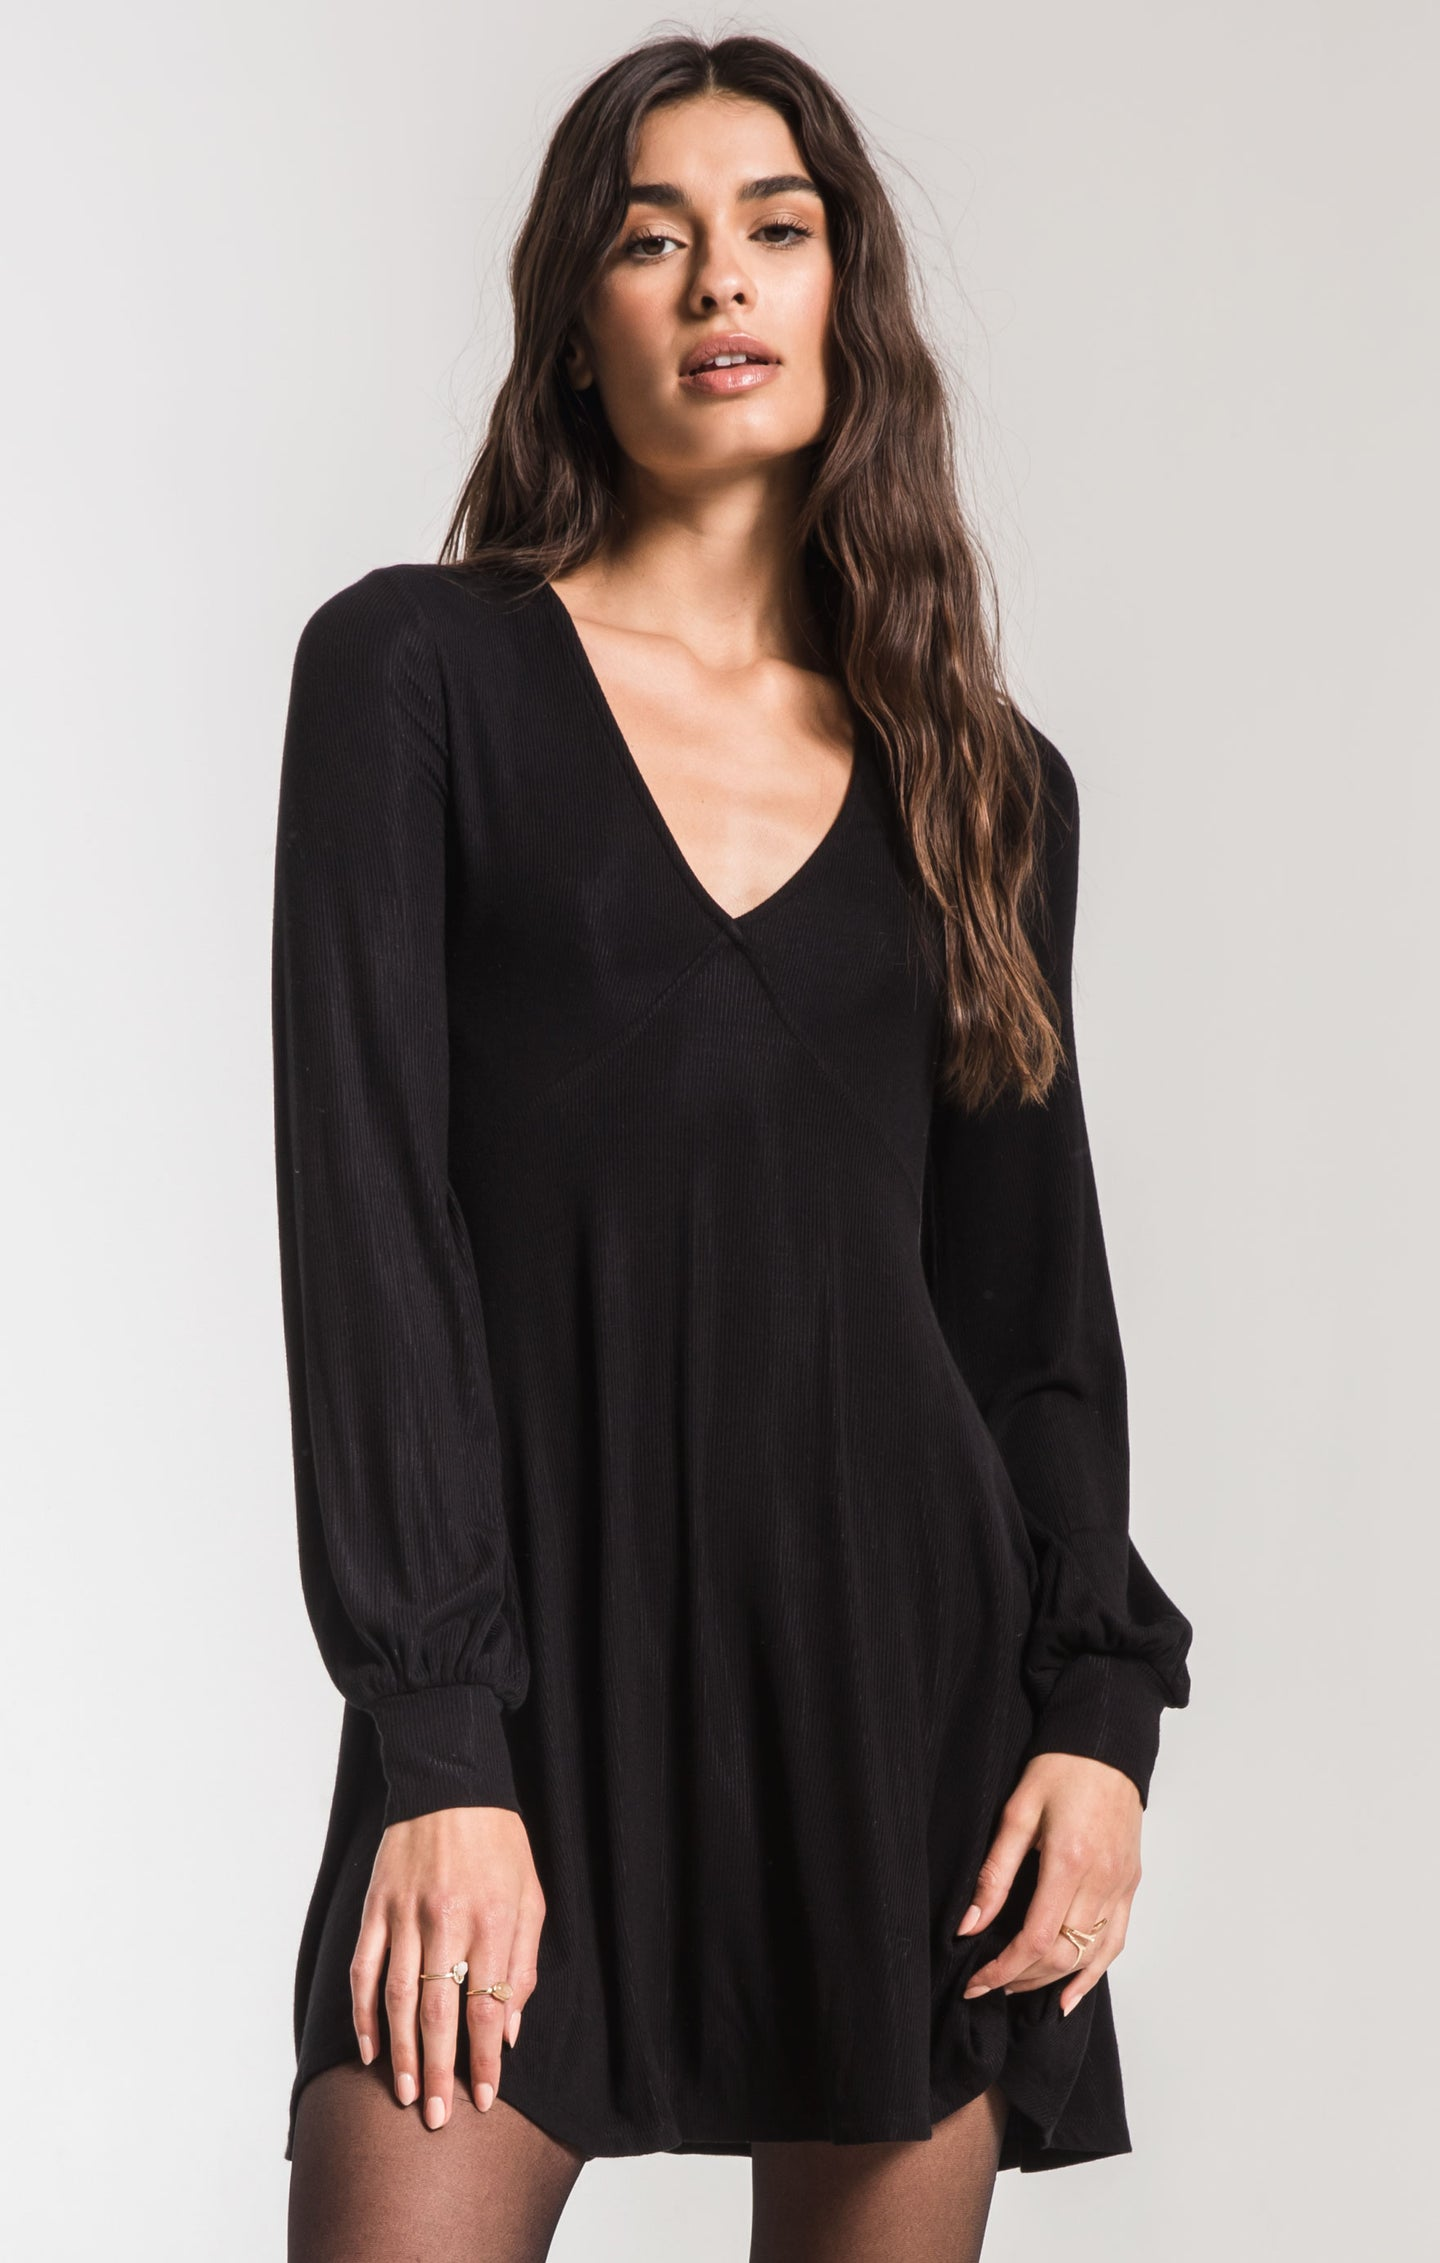 The Micro Rib Long Sleeve Dress